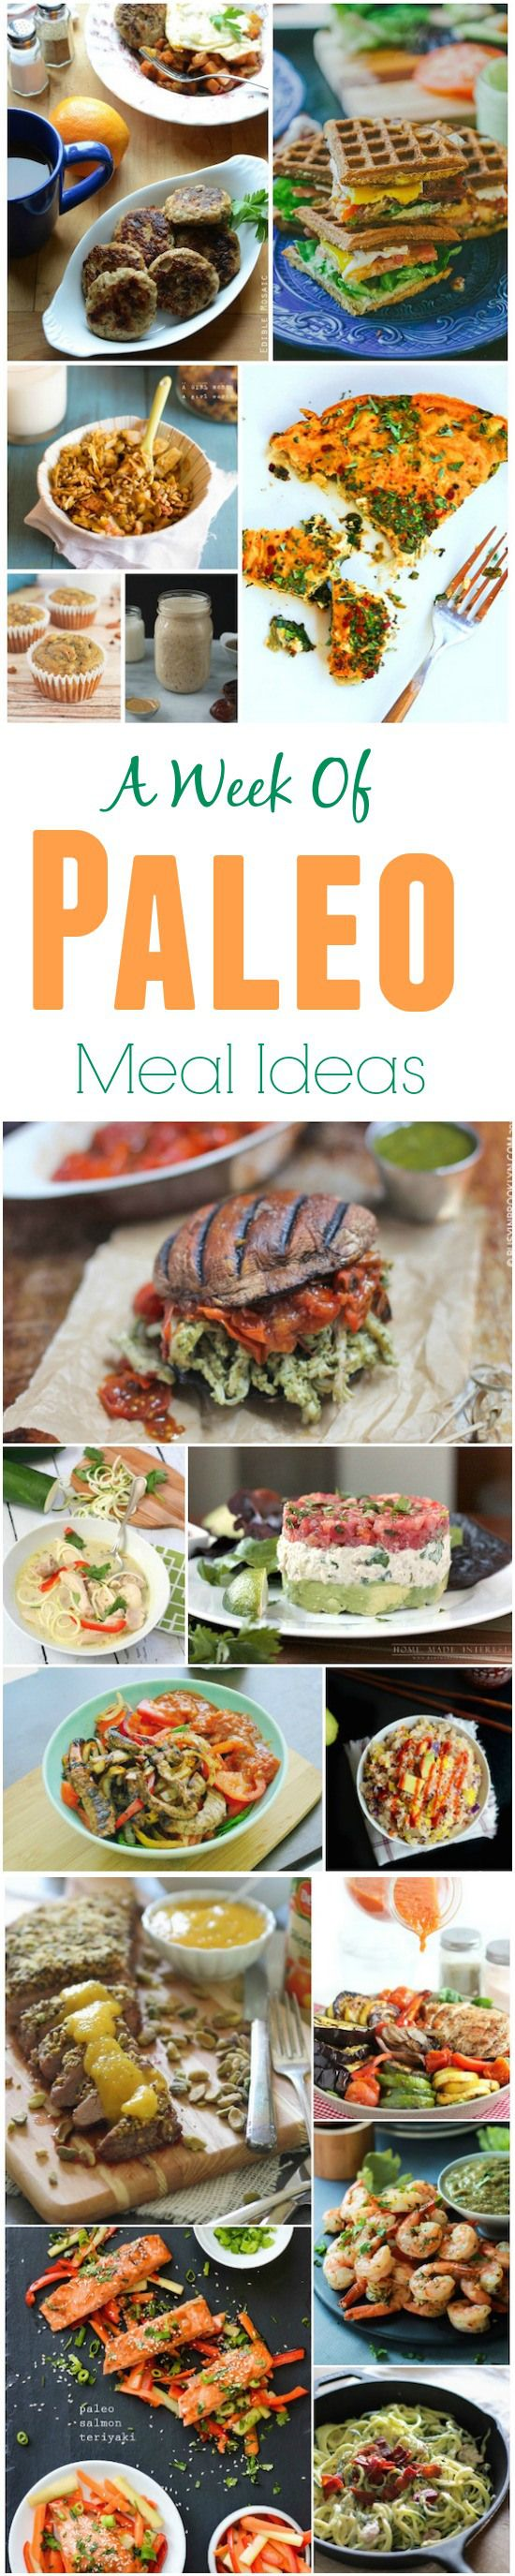 A week of paleo meals and recipe ideas to help you plan your breakfast, lunch and dinner menu for next week!